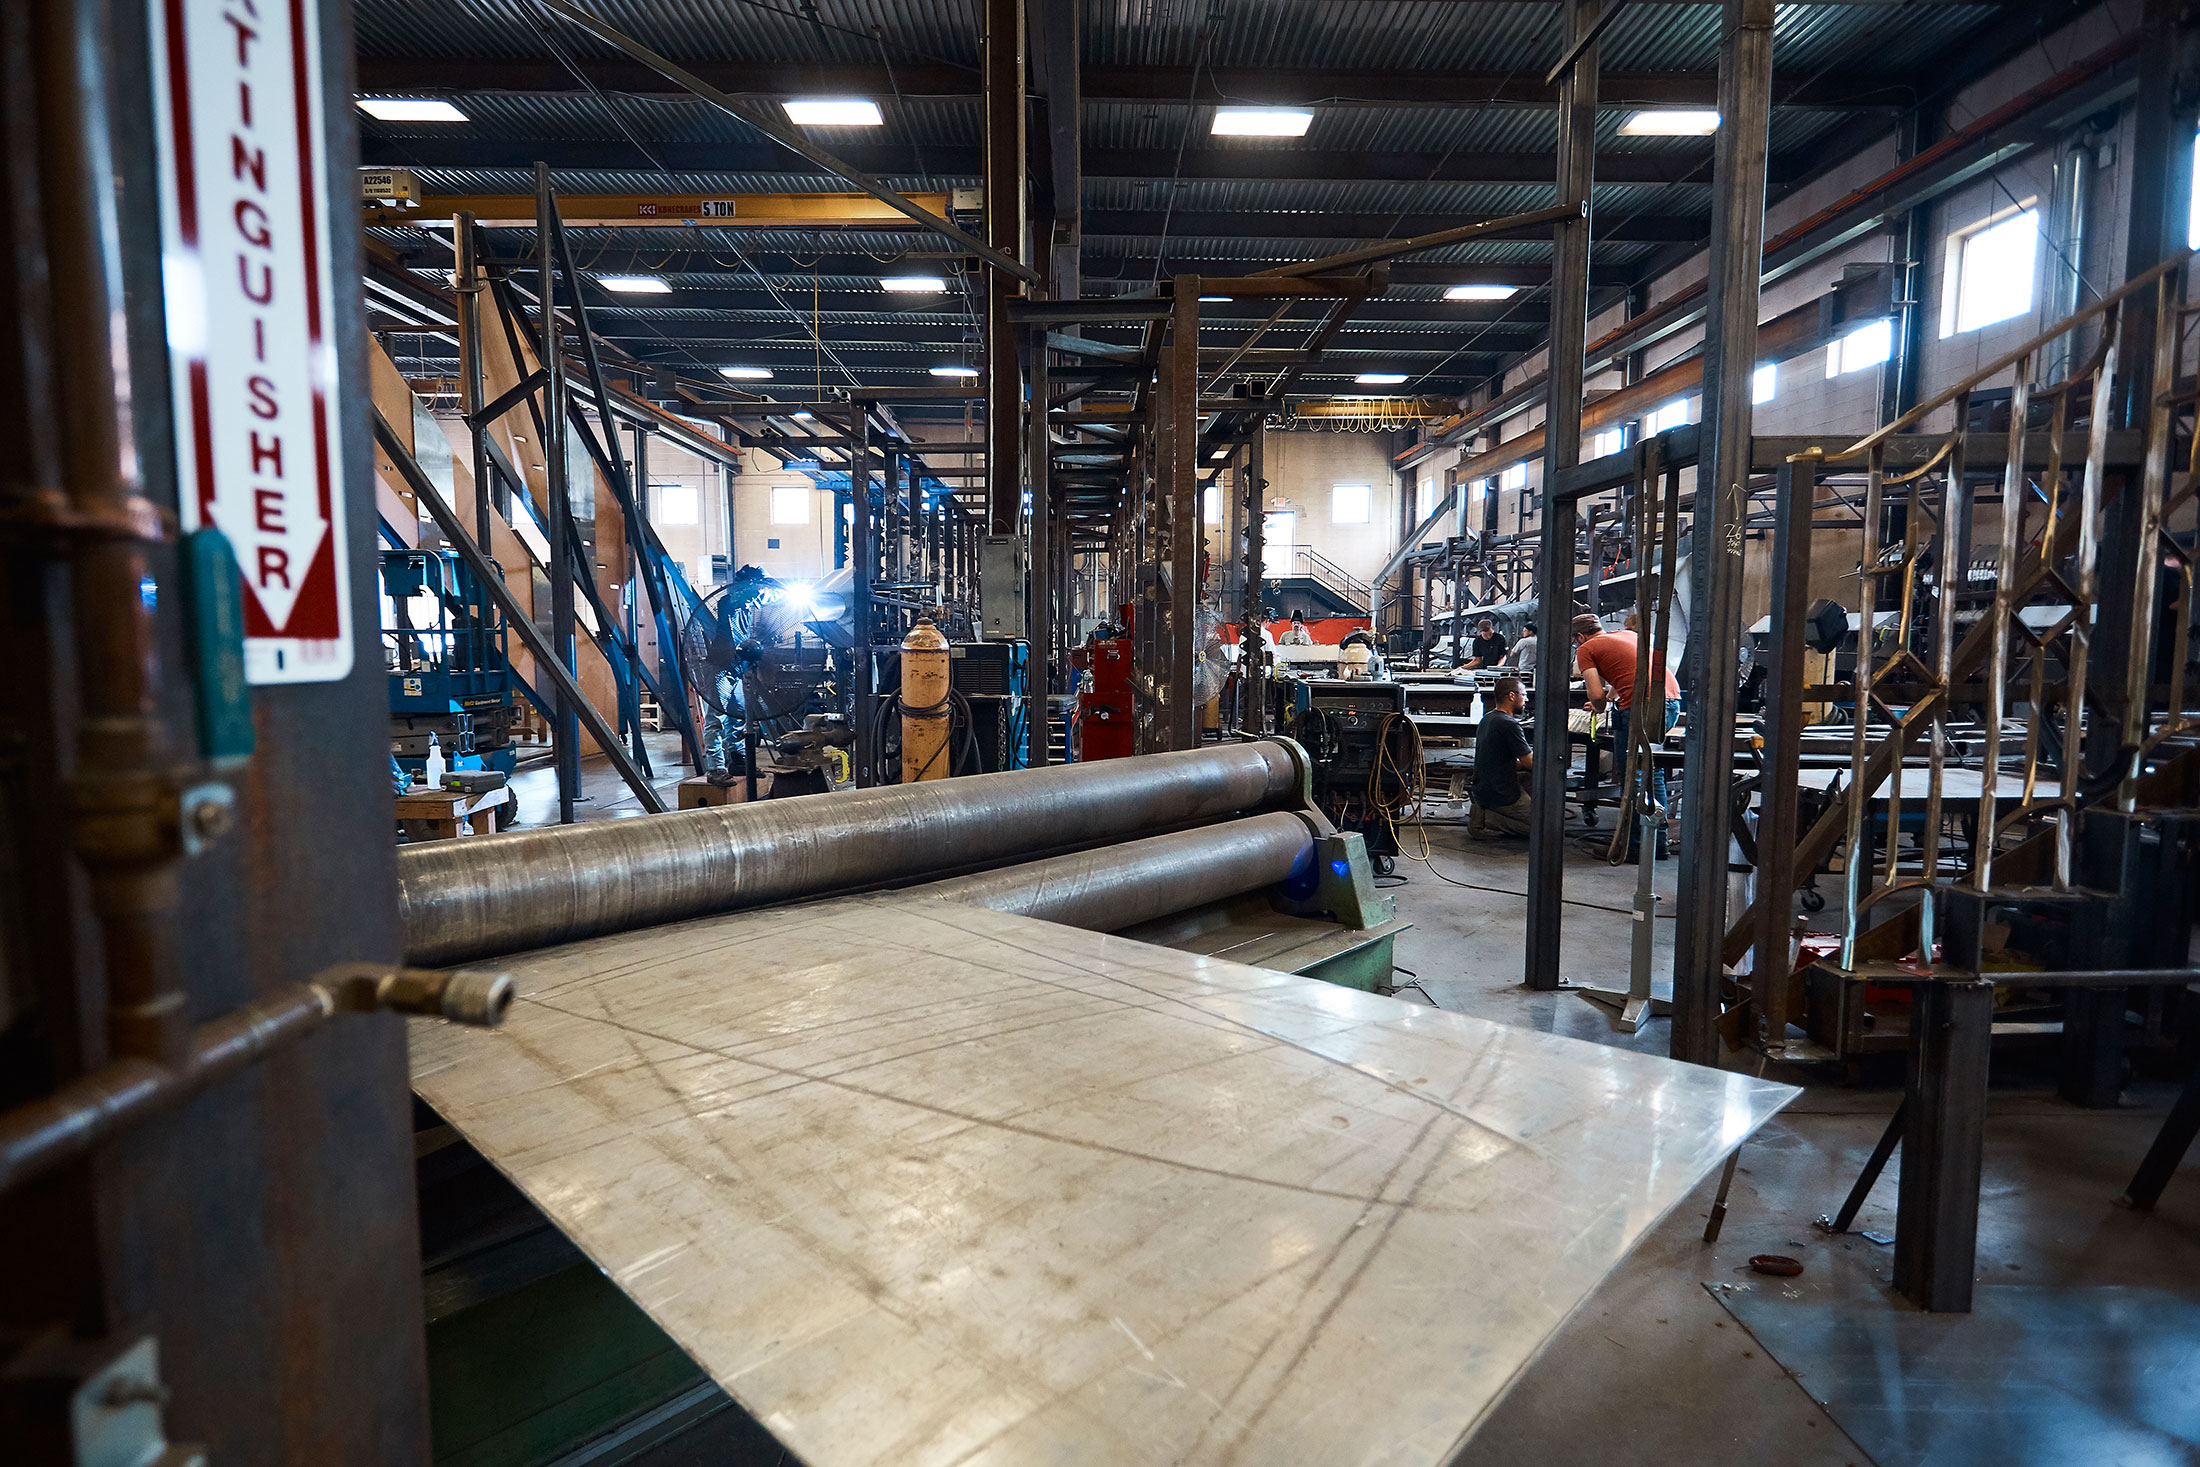 A look inside the factory where metal is bent and welded to form panels.